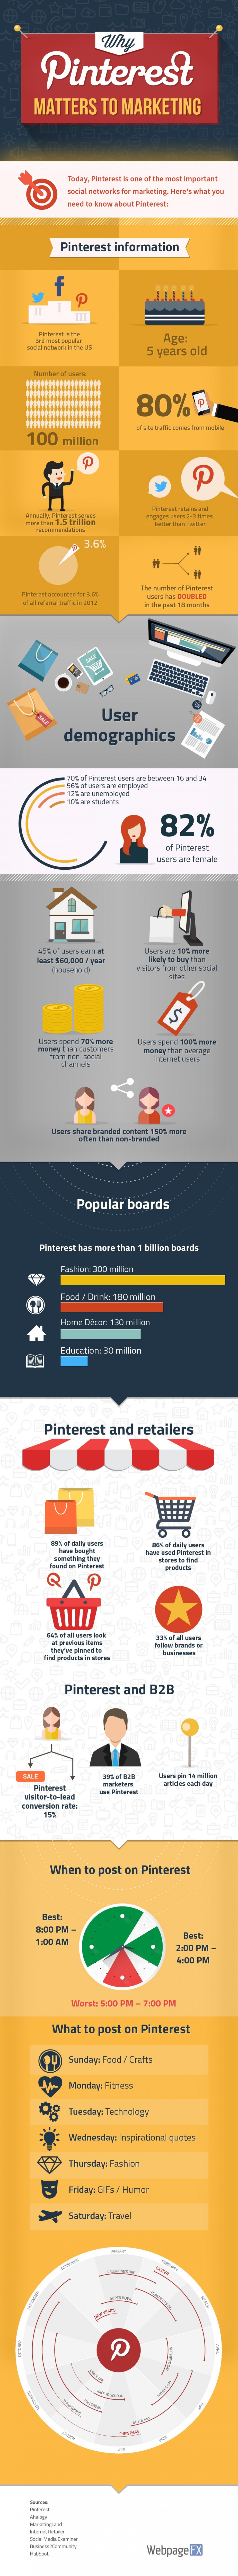 Why Pinterest Matters to Marketing Infographic